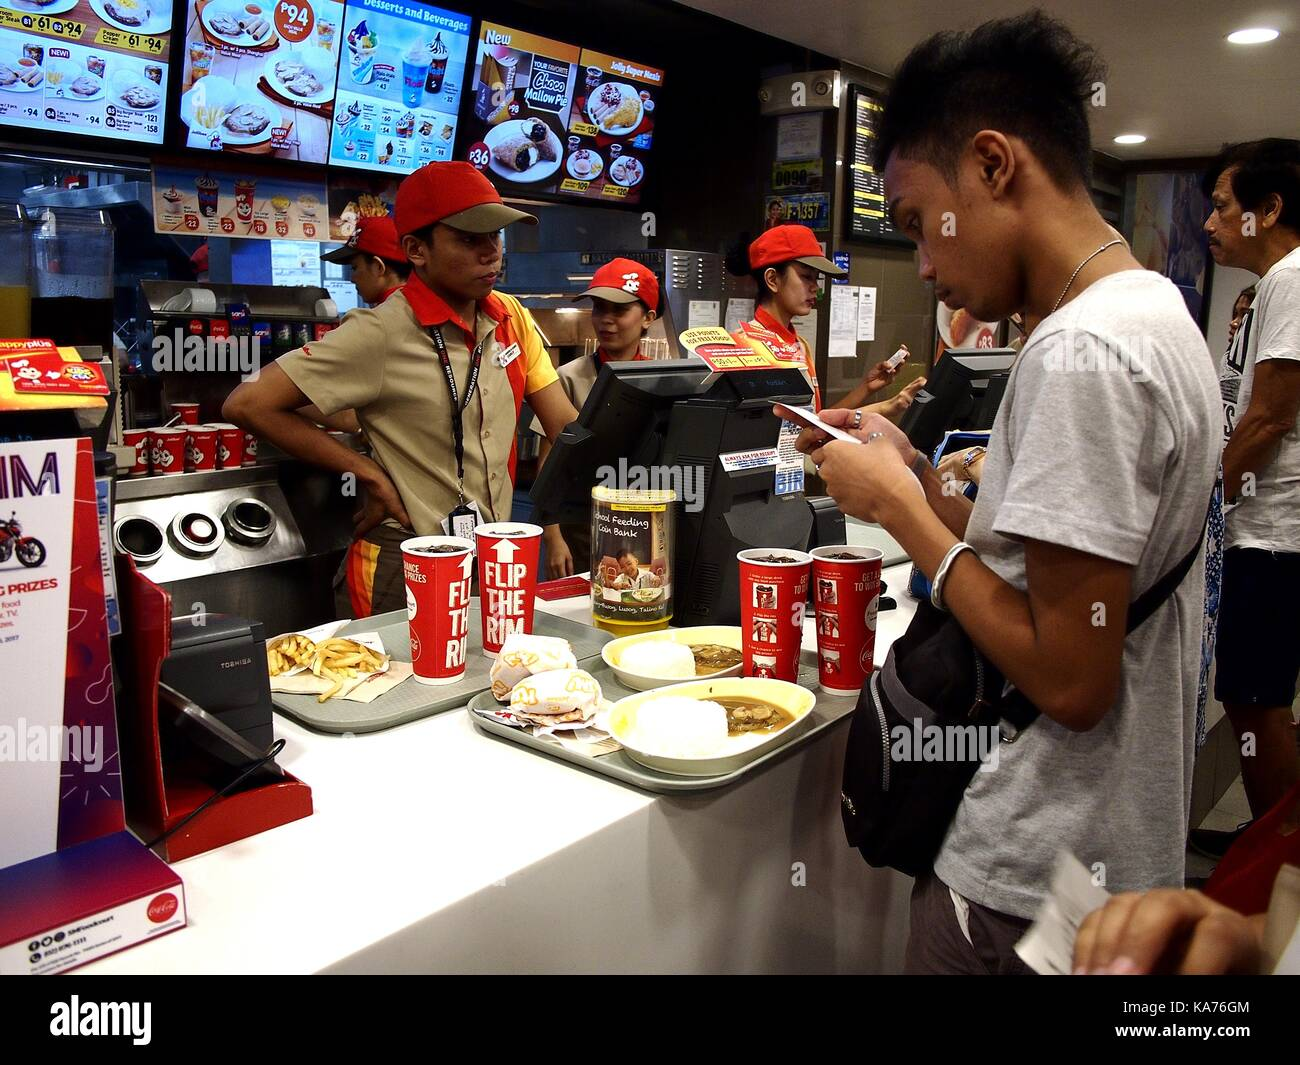 Chinese Fast Food Chain In The Philippines